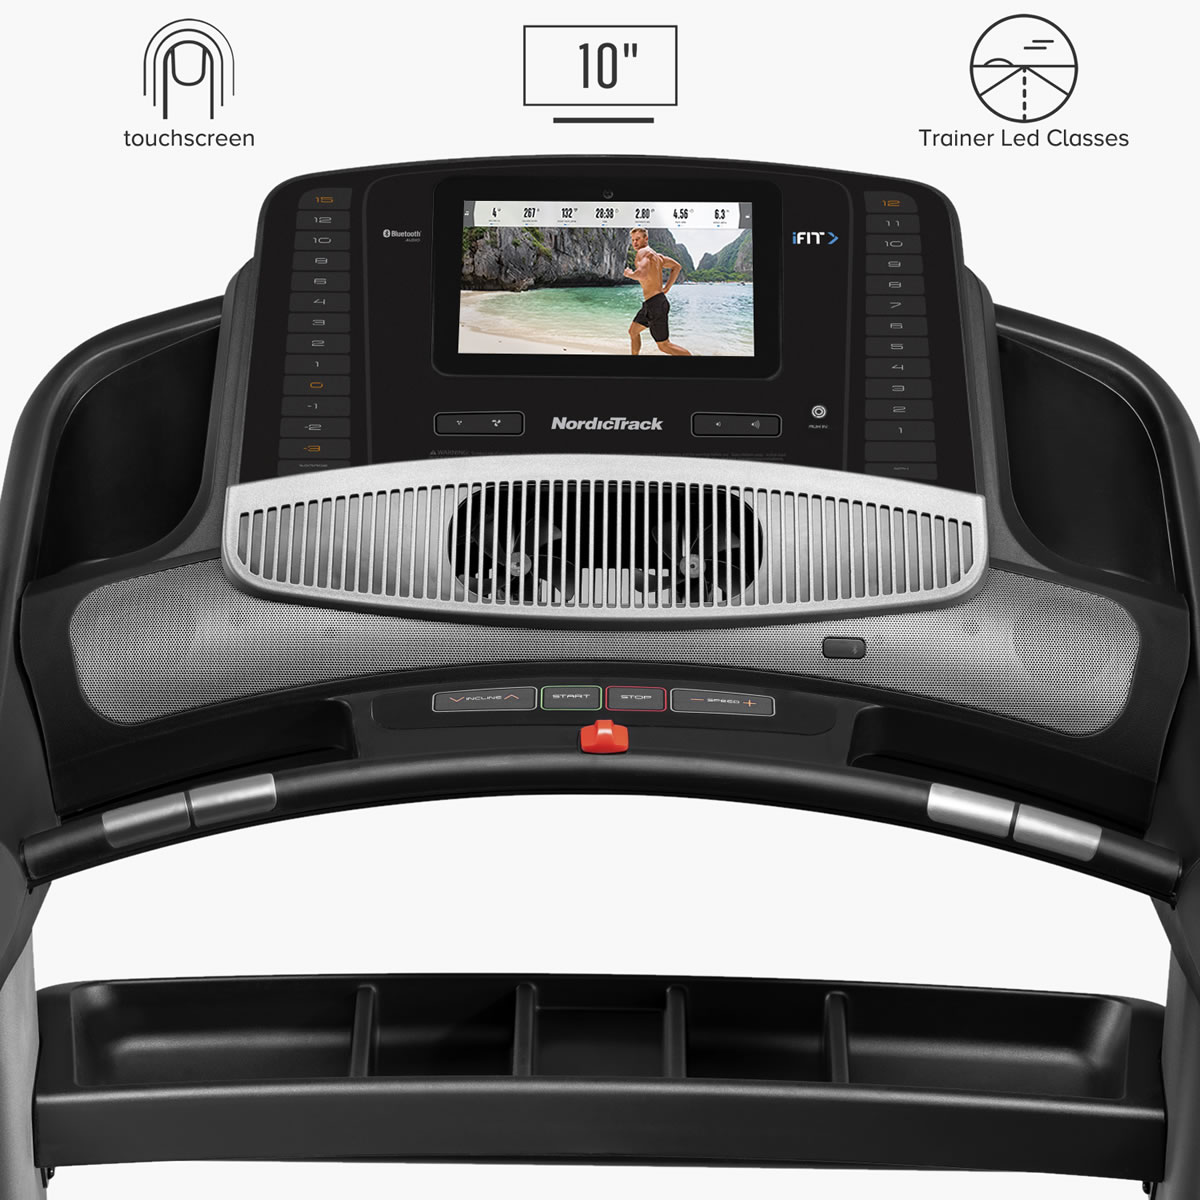 """With its 10"""" screen Powered by iFit interactive training you will experience a more immersive training. Workout from home on your schedule, yet still get personal, motivational instruction"""